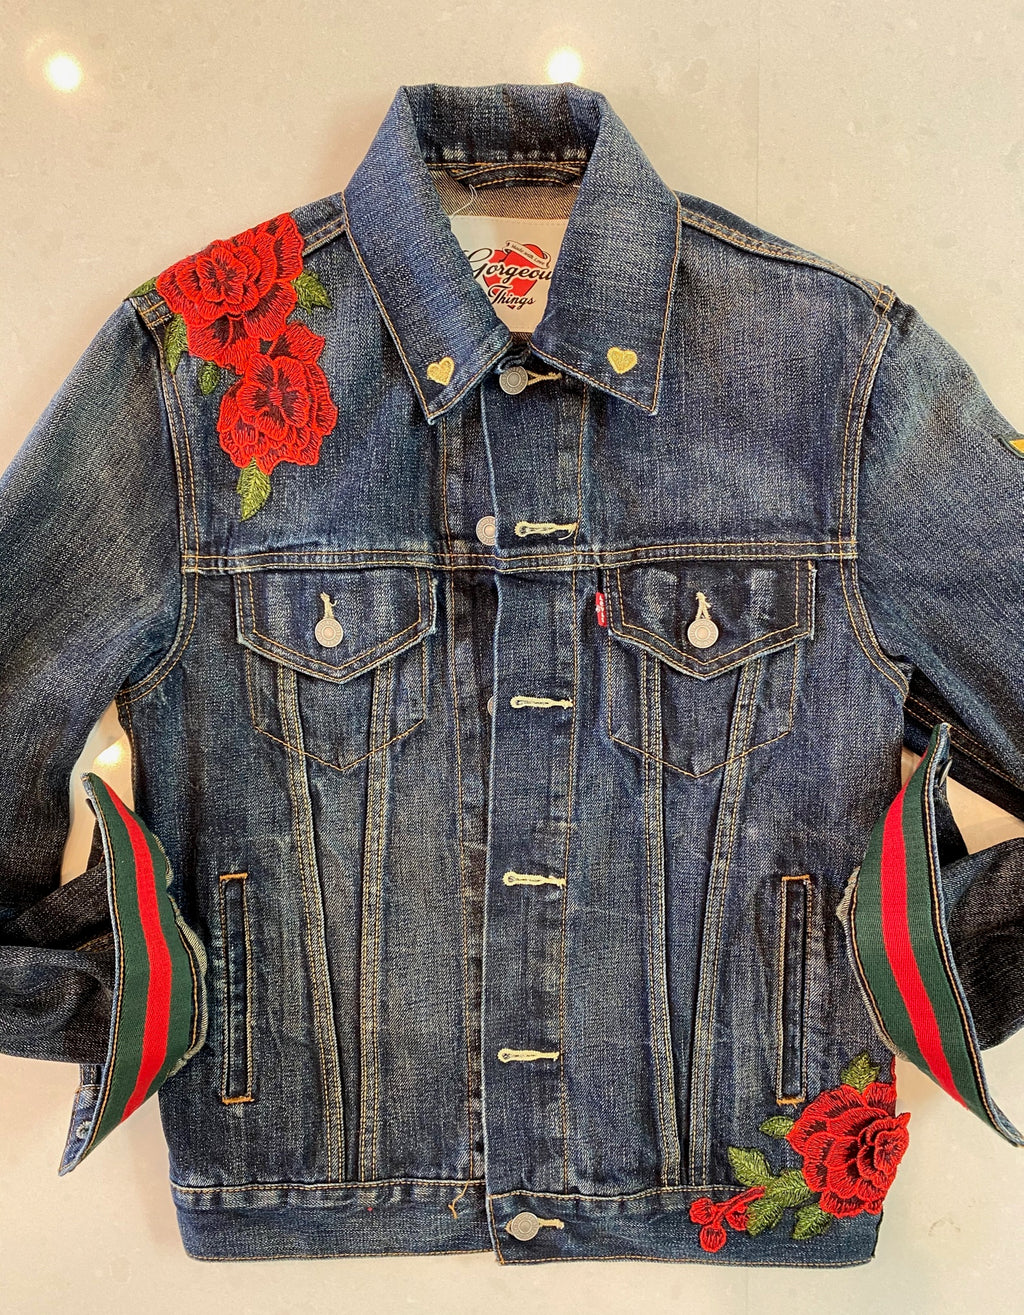 Falling in Love Vintage Denim